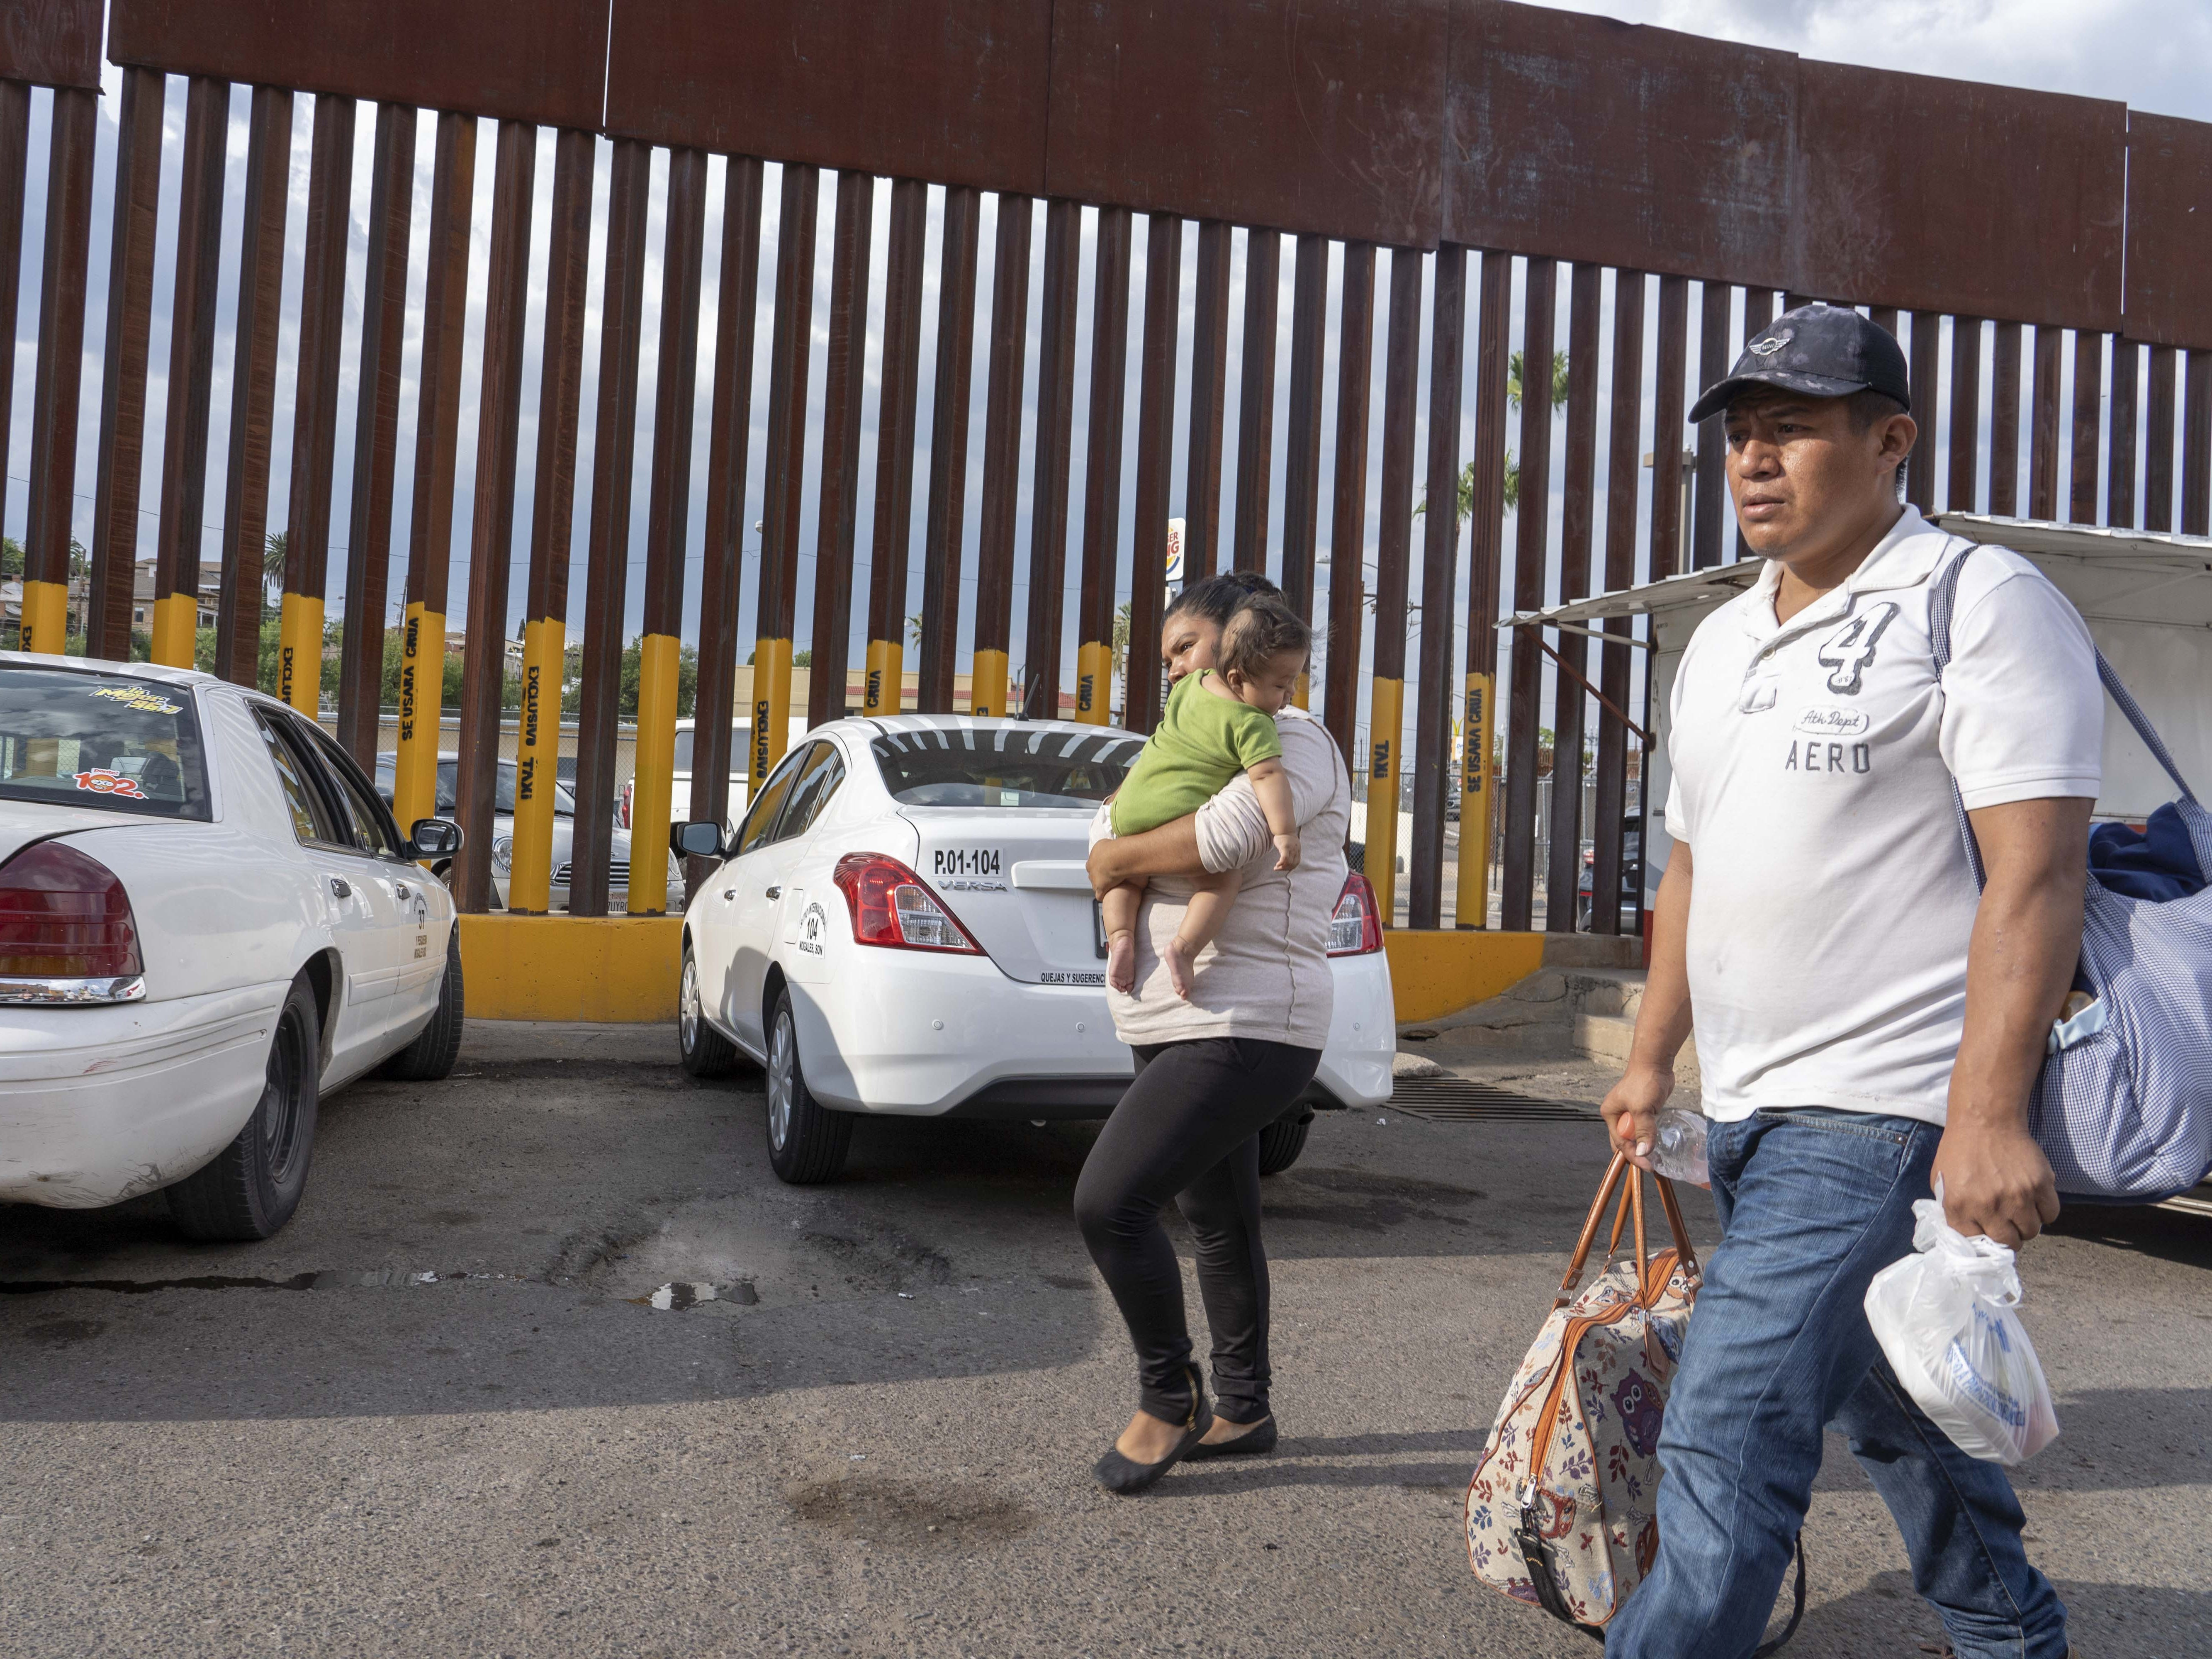 Elation Laguna Flores, Miriam Chino Gonzalez, and their baby, Ivan Laguna, went to the at the DeConcini port of entry to seek asylum. The family is from Guerrero, Mexico.